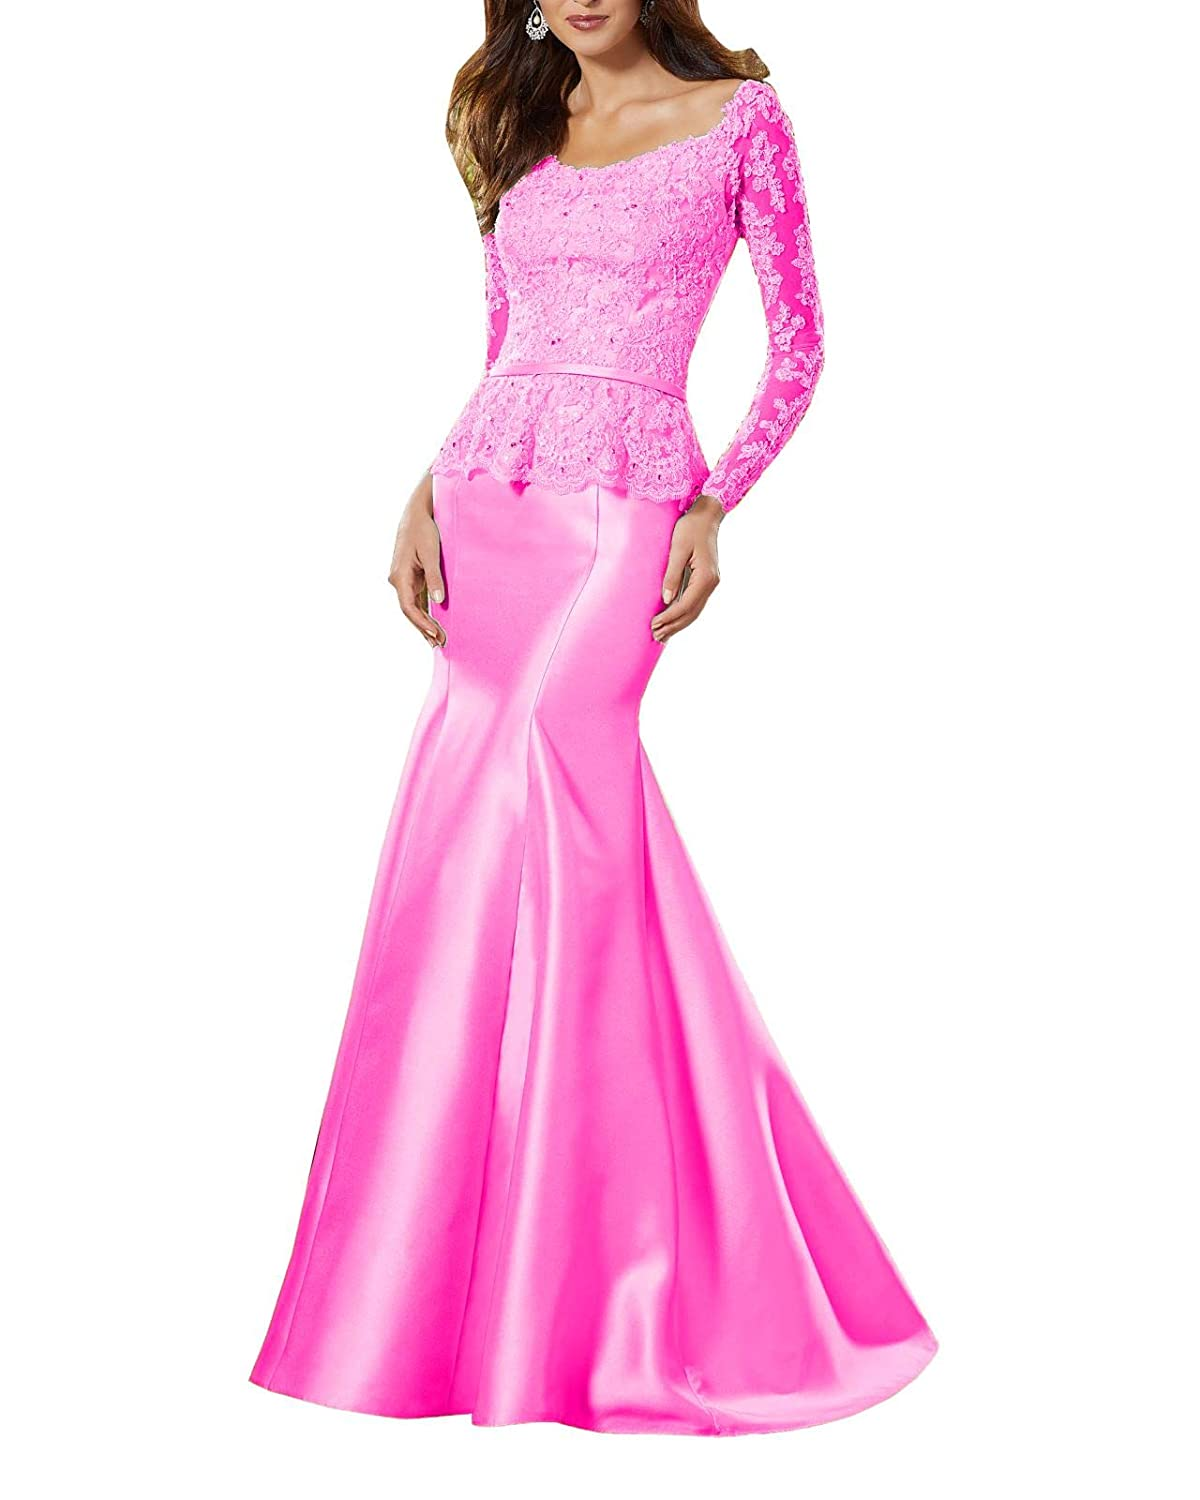 Hot Pink Wanshaqin Women's Heavy Beaded Lace Formal Evening Gown Stunning Silk Party Dress with Empire Waist